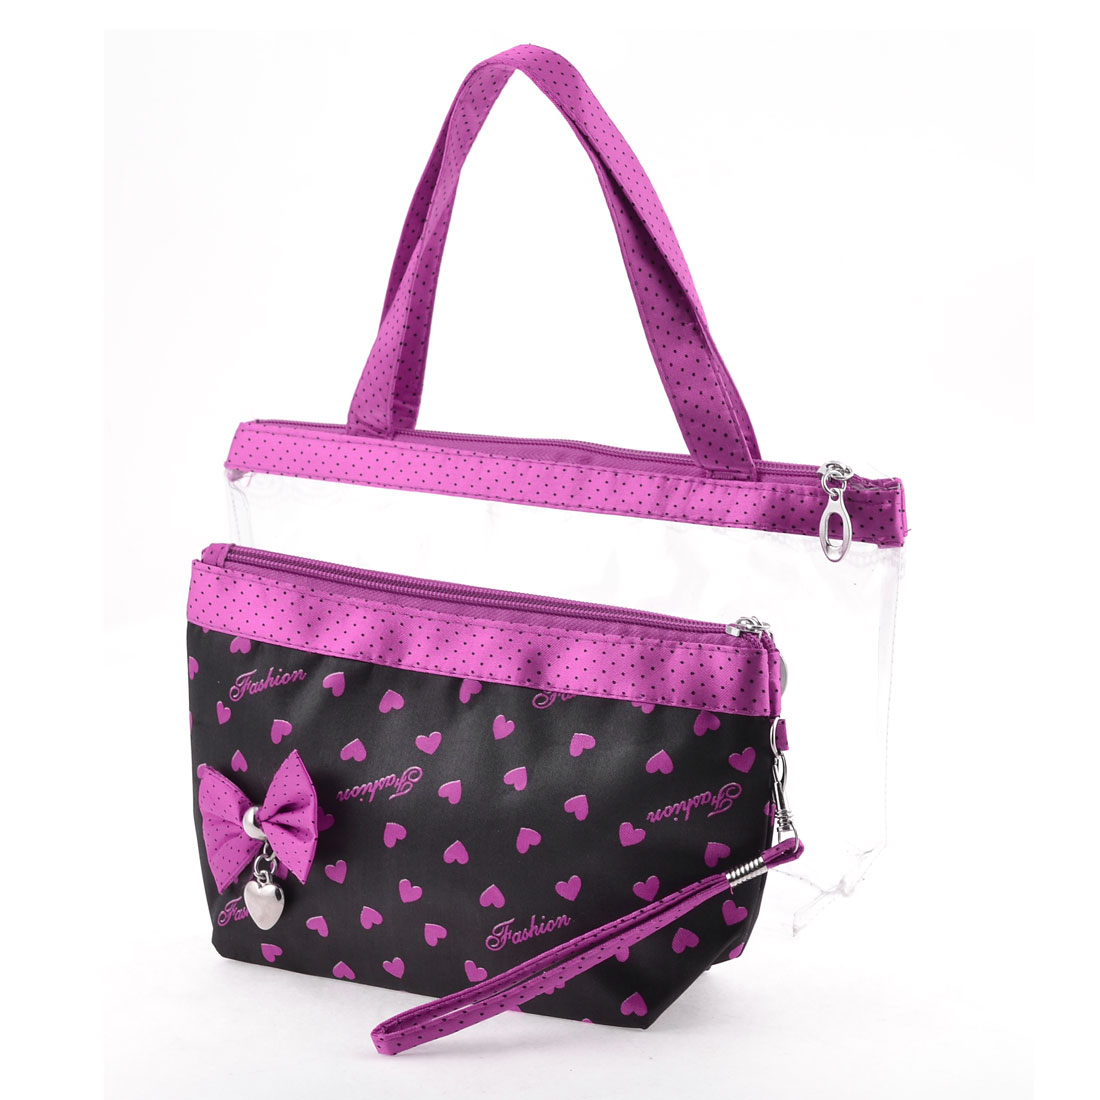 Fuchsia Hearts Pattern Clear Plastic Zipper Closure Makeup Bag 2 in 1